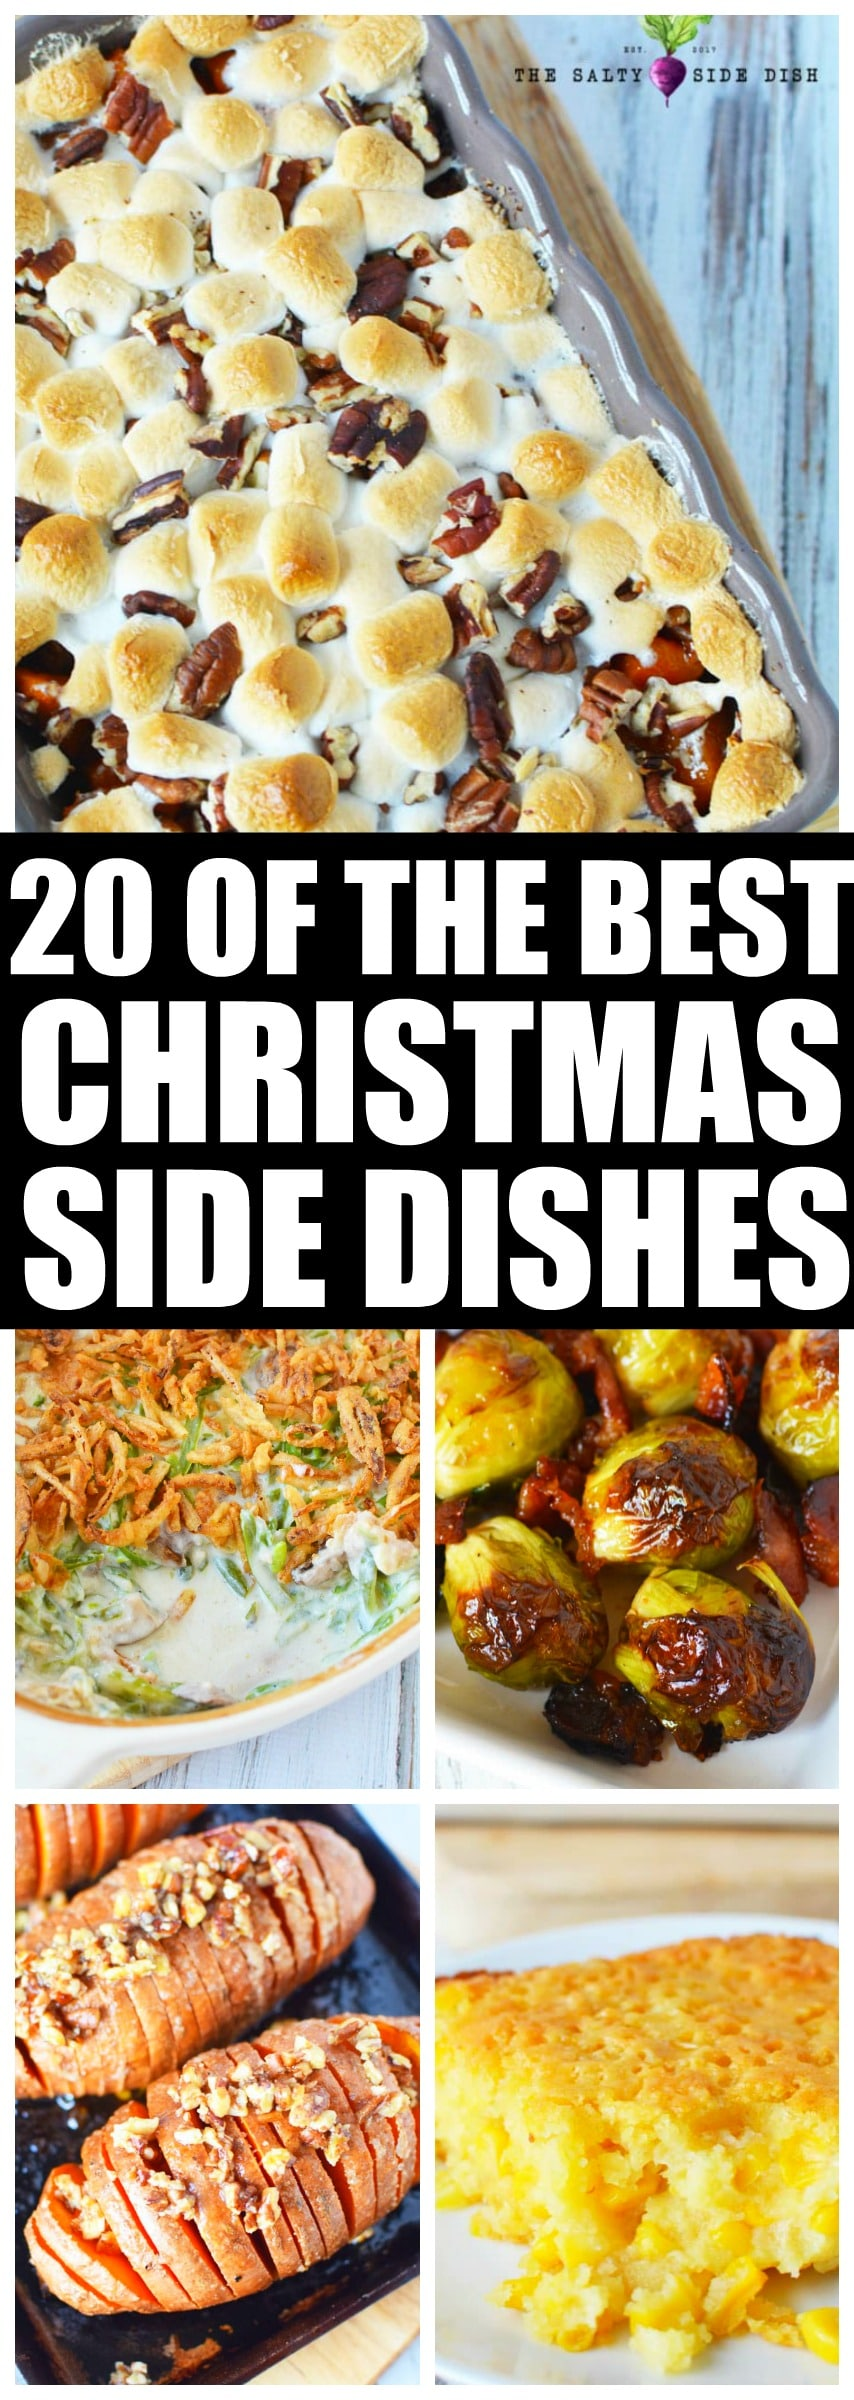 20 of the best christmas side dishes traditional christmas side dish recipes christmas - Best Christmas Side Dishes